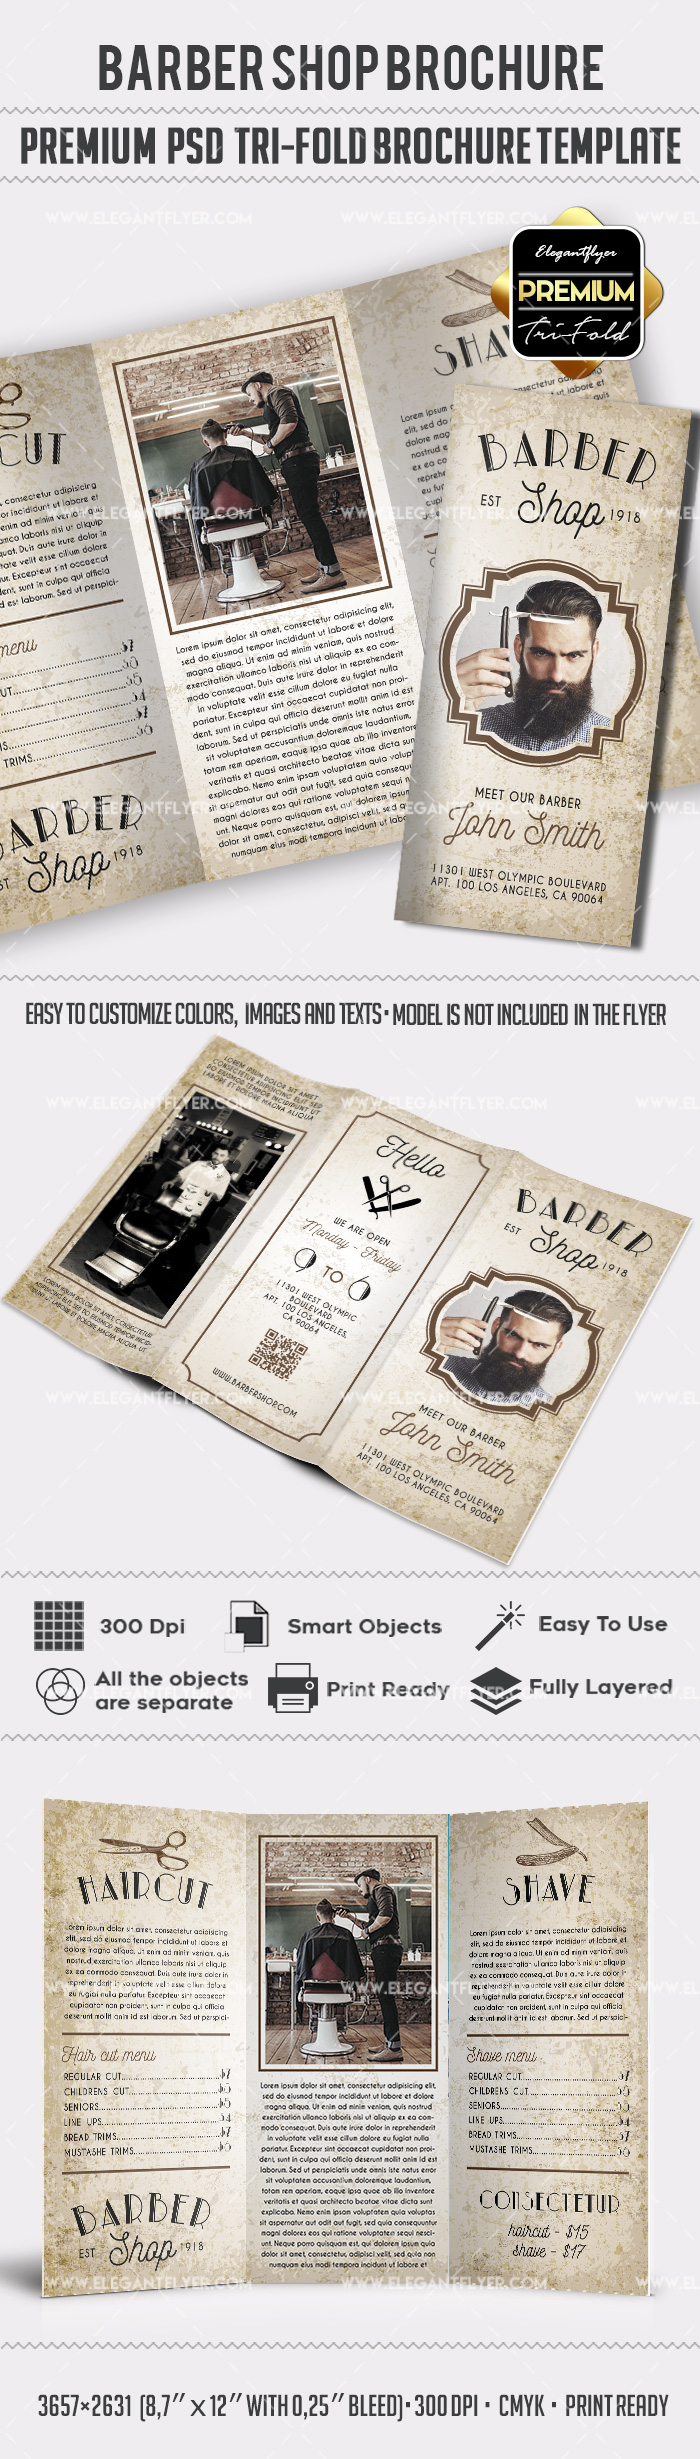 Tri-Fold Brochore for Elite Barbershop